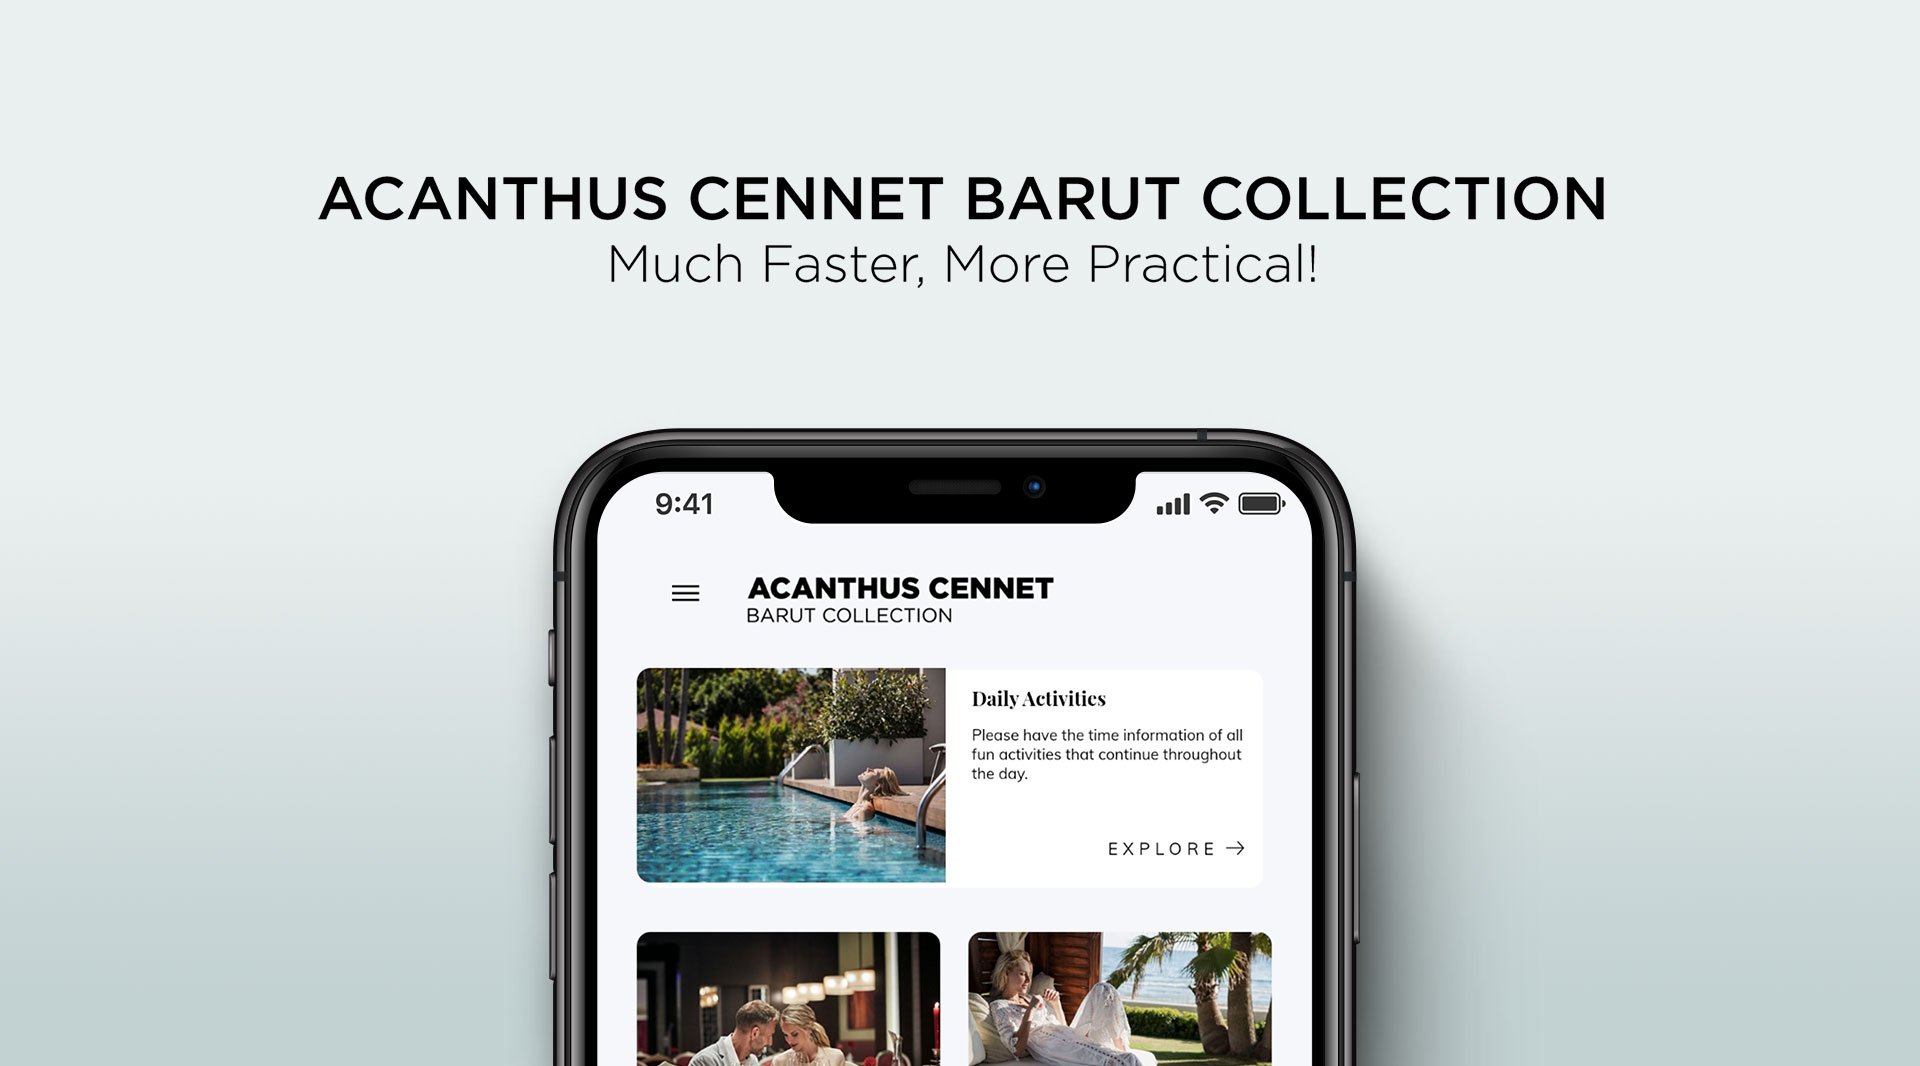 Acanthus Cennet Barut Collection mobile application is waiting for you at Google Play Store or App Store.